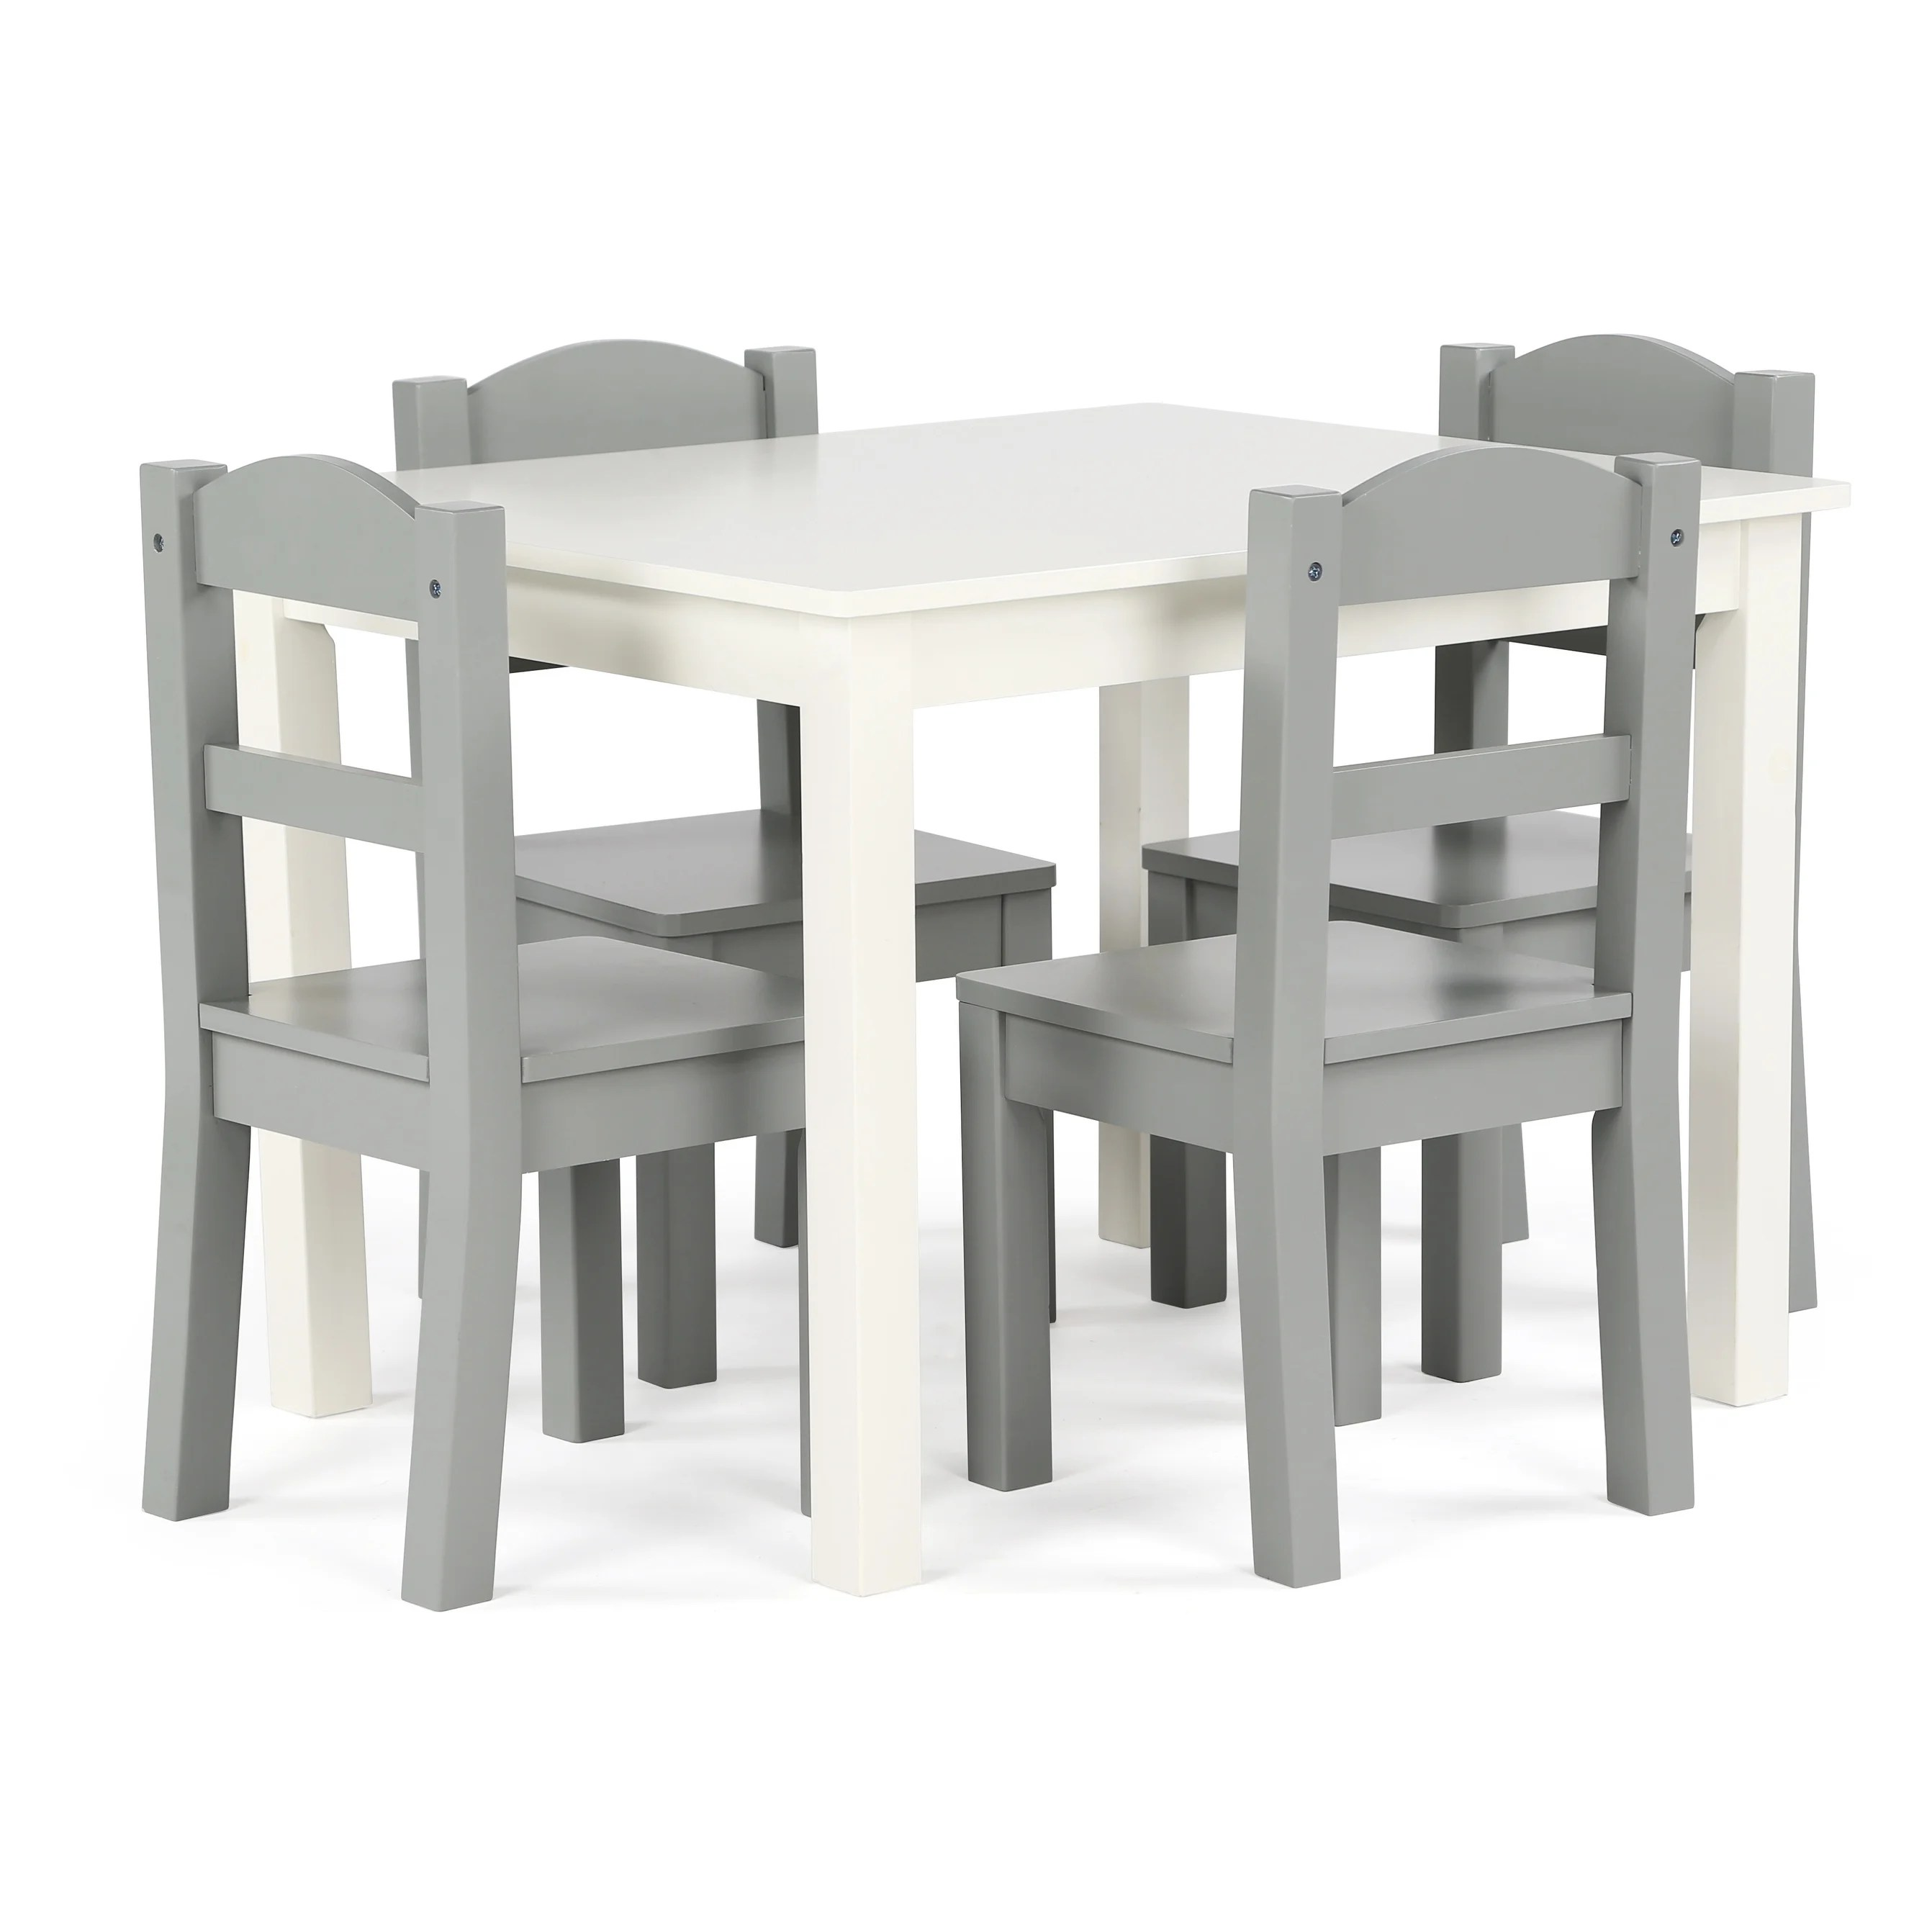 Childrens Table And Chair Set Springfield 5 Piece Wood Kids Table Chairs Set In White Grey